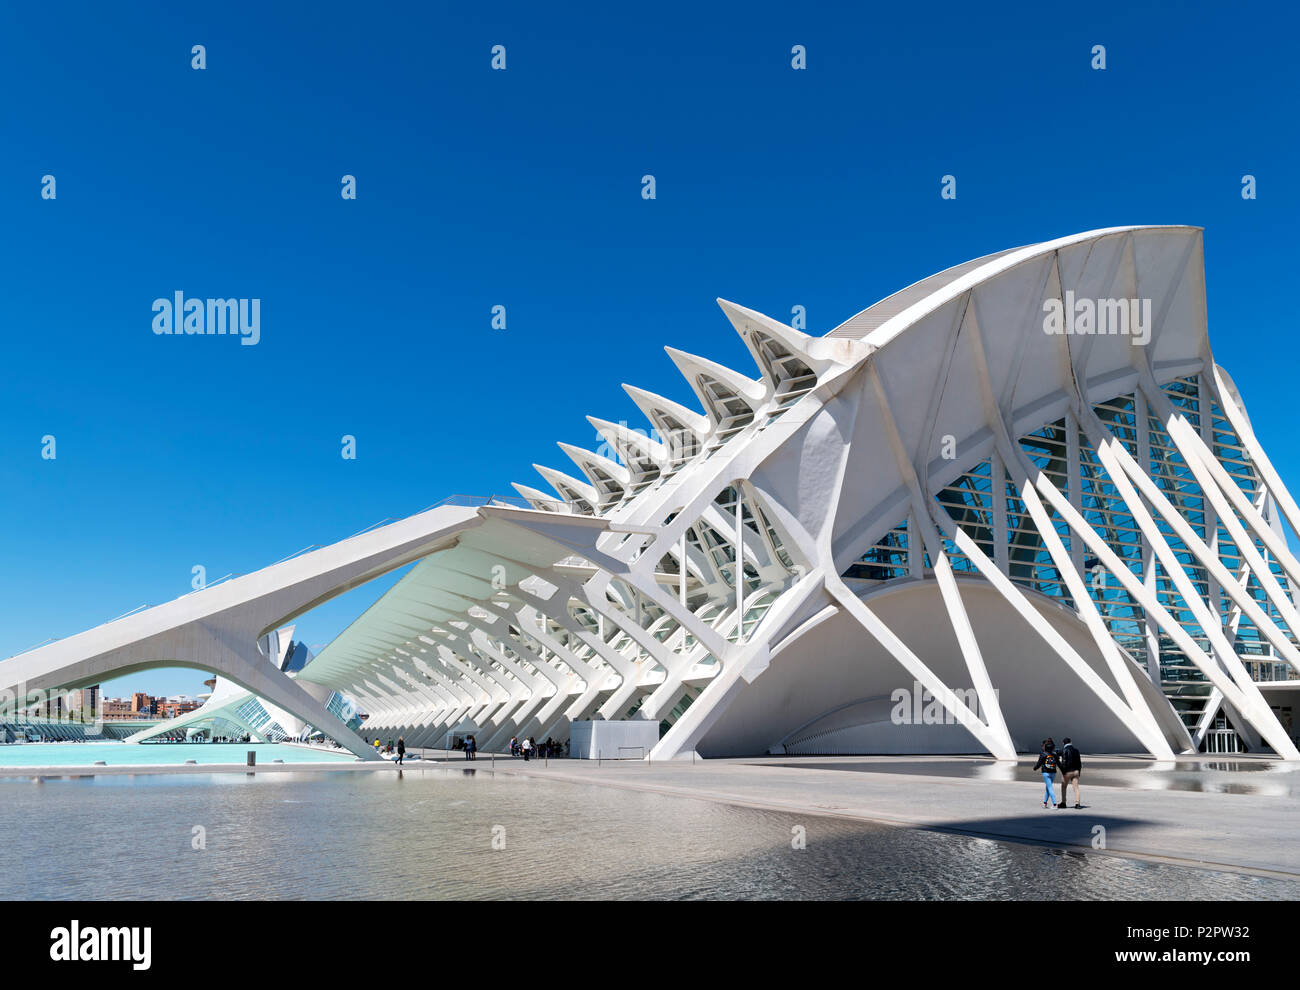 Valencia, City of Arts and Sciences. The Science Museum (Museo de las Ciencias Principe Felipe), Ciudad de las Artes y las Ciencias, Valencia, Spain. - Stock Image